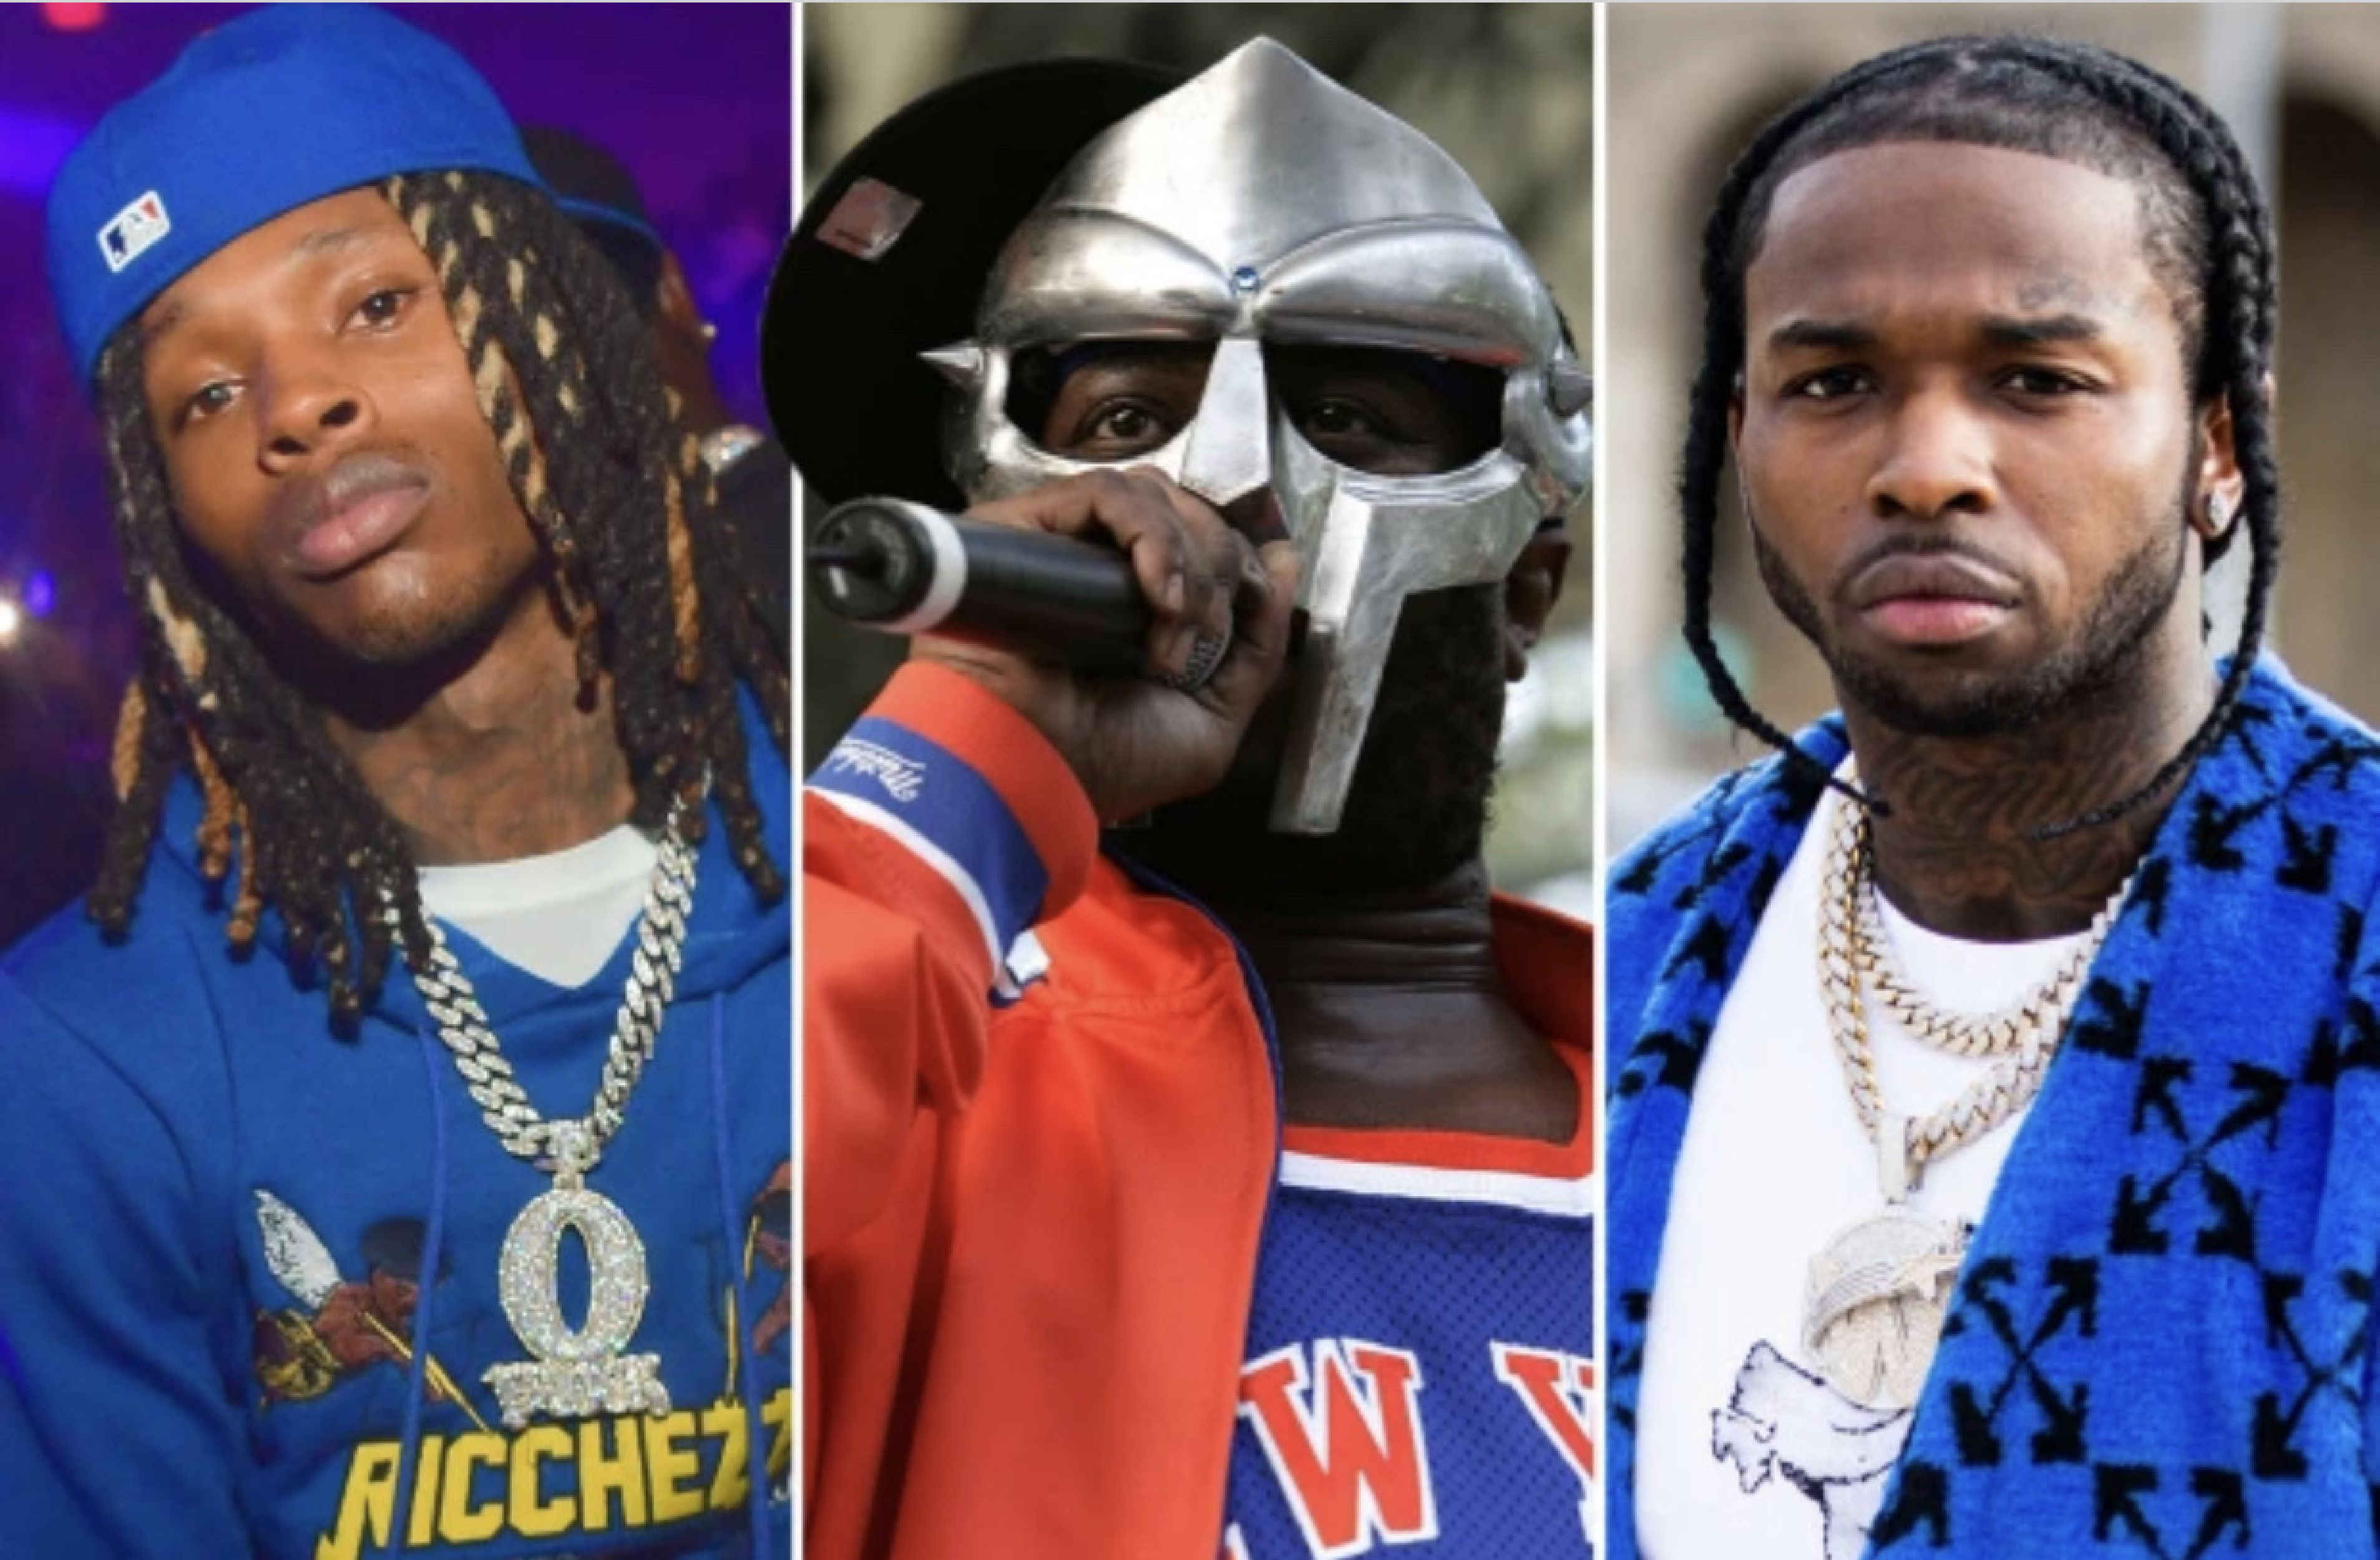 Rappers dieing with no protection